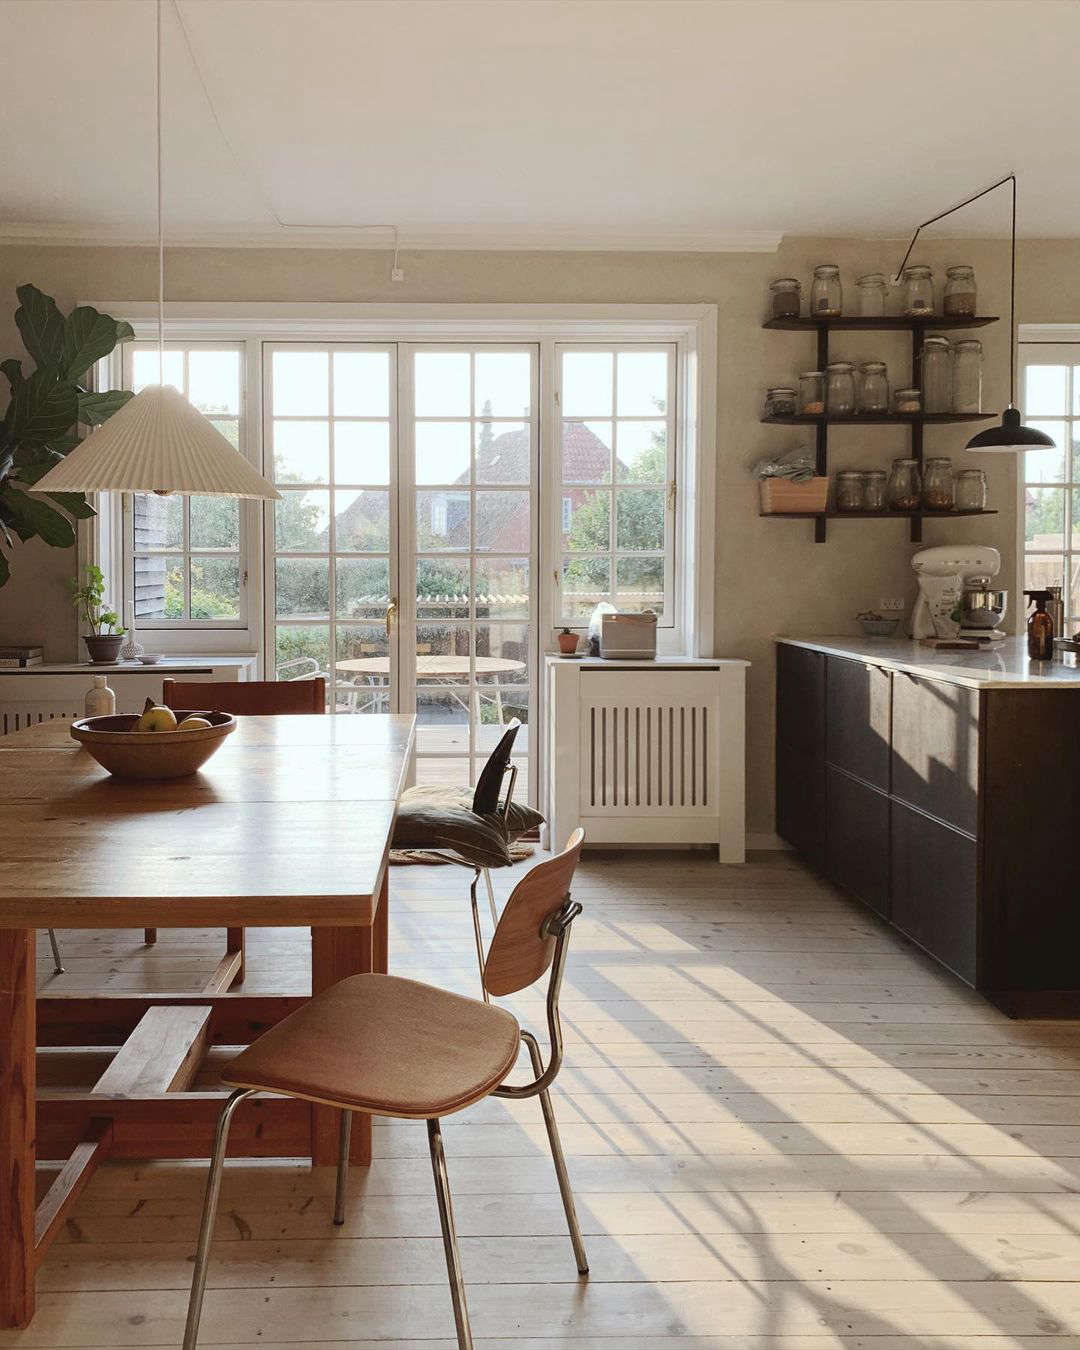 Steal This Look: A Danish Kitchen/Dining Room with Vintage Charm